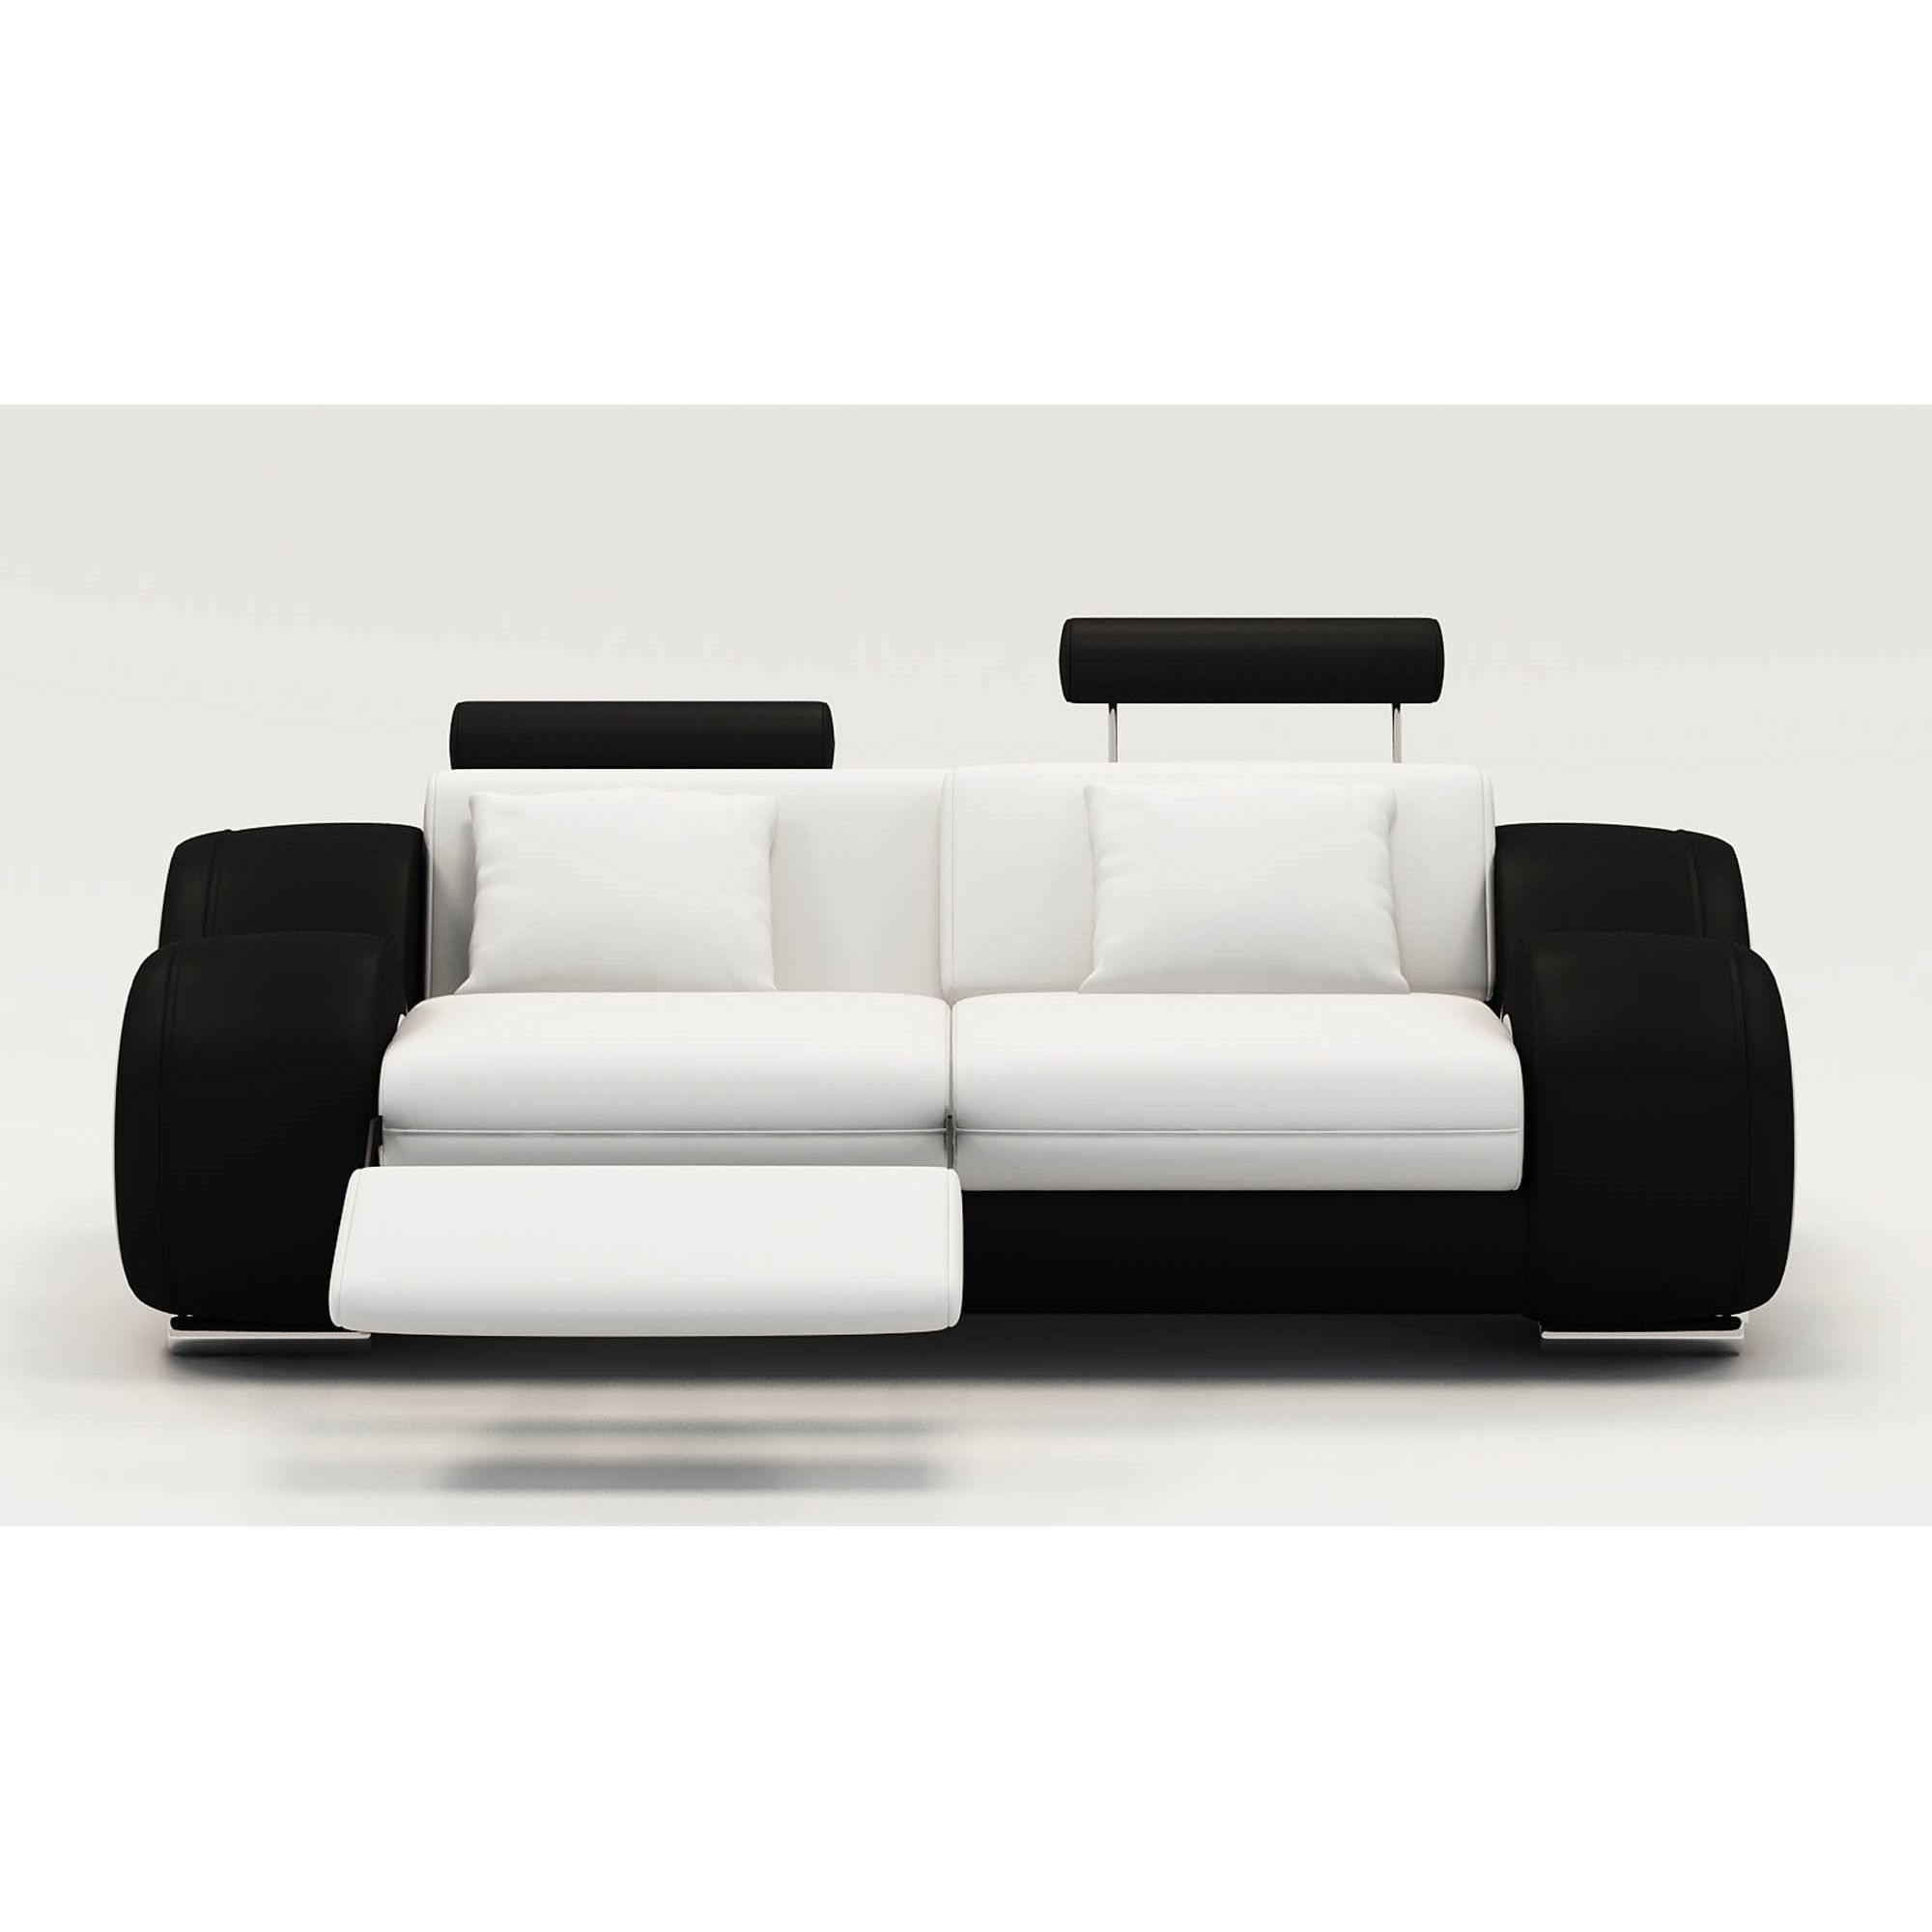 Deco in paris ensemble canape relax design 3 2 1 places - Canape 3 et 2 places ...